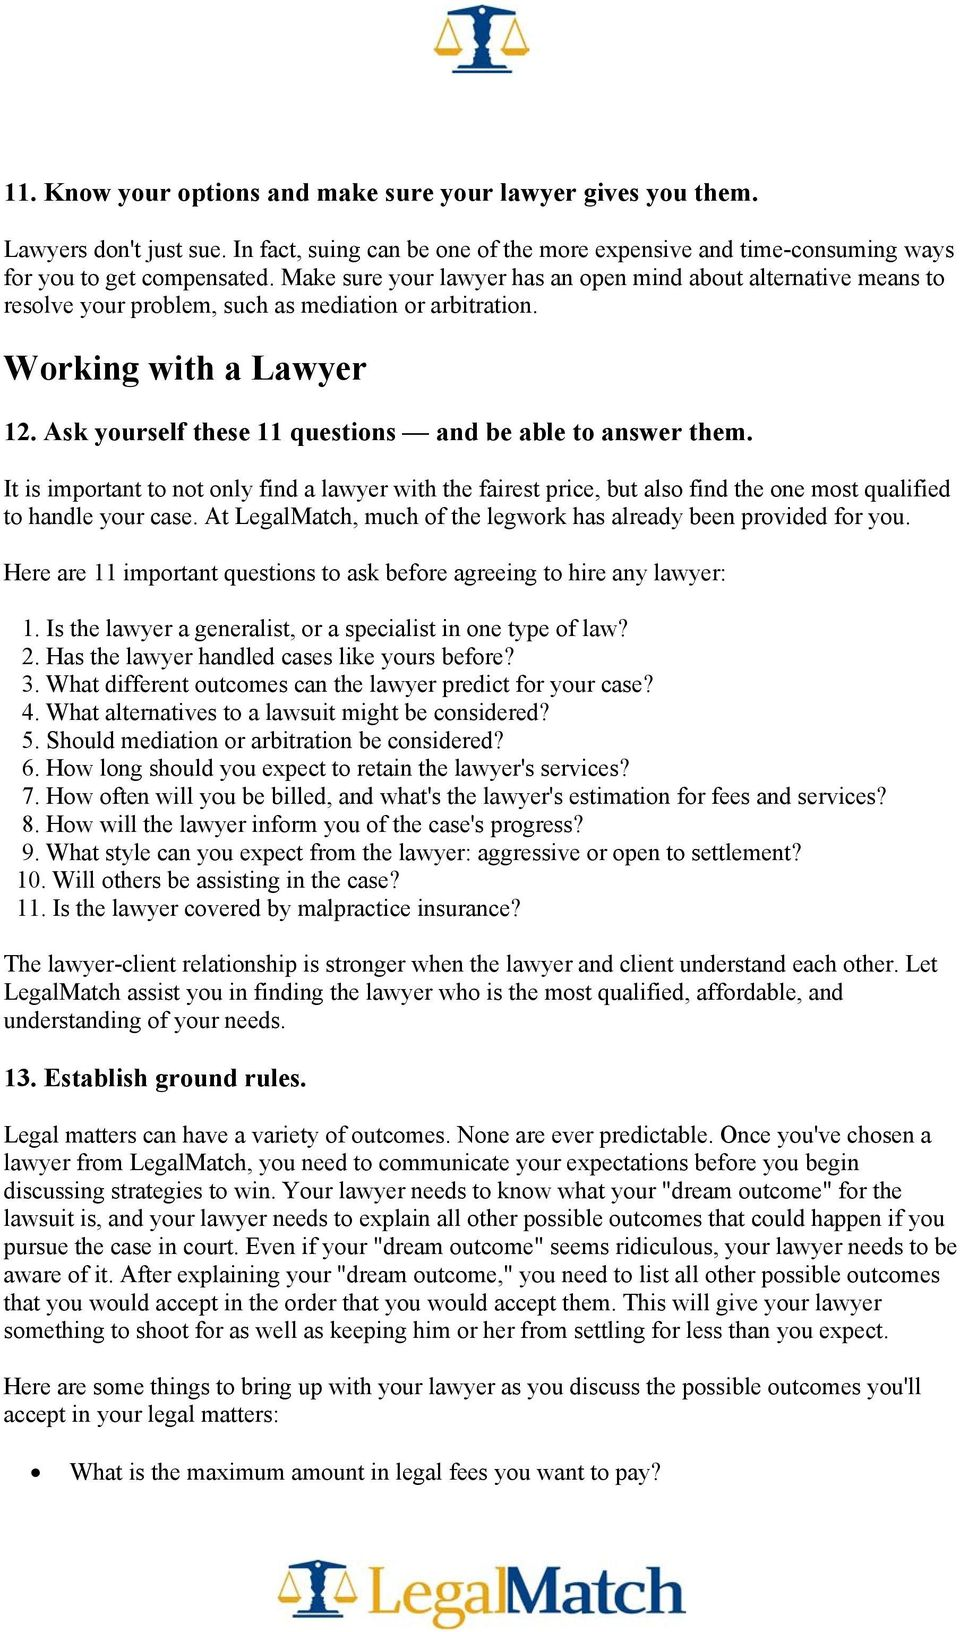 Ask yourself these 11 questions and be able to answer them. It is important to not only find a lawyer with the fairest price, but also find the one most qualified to handle your case.